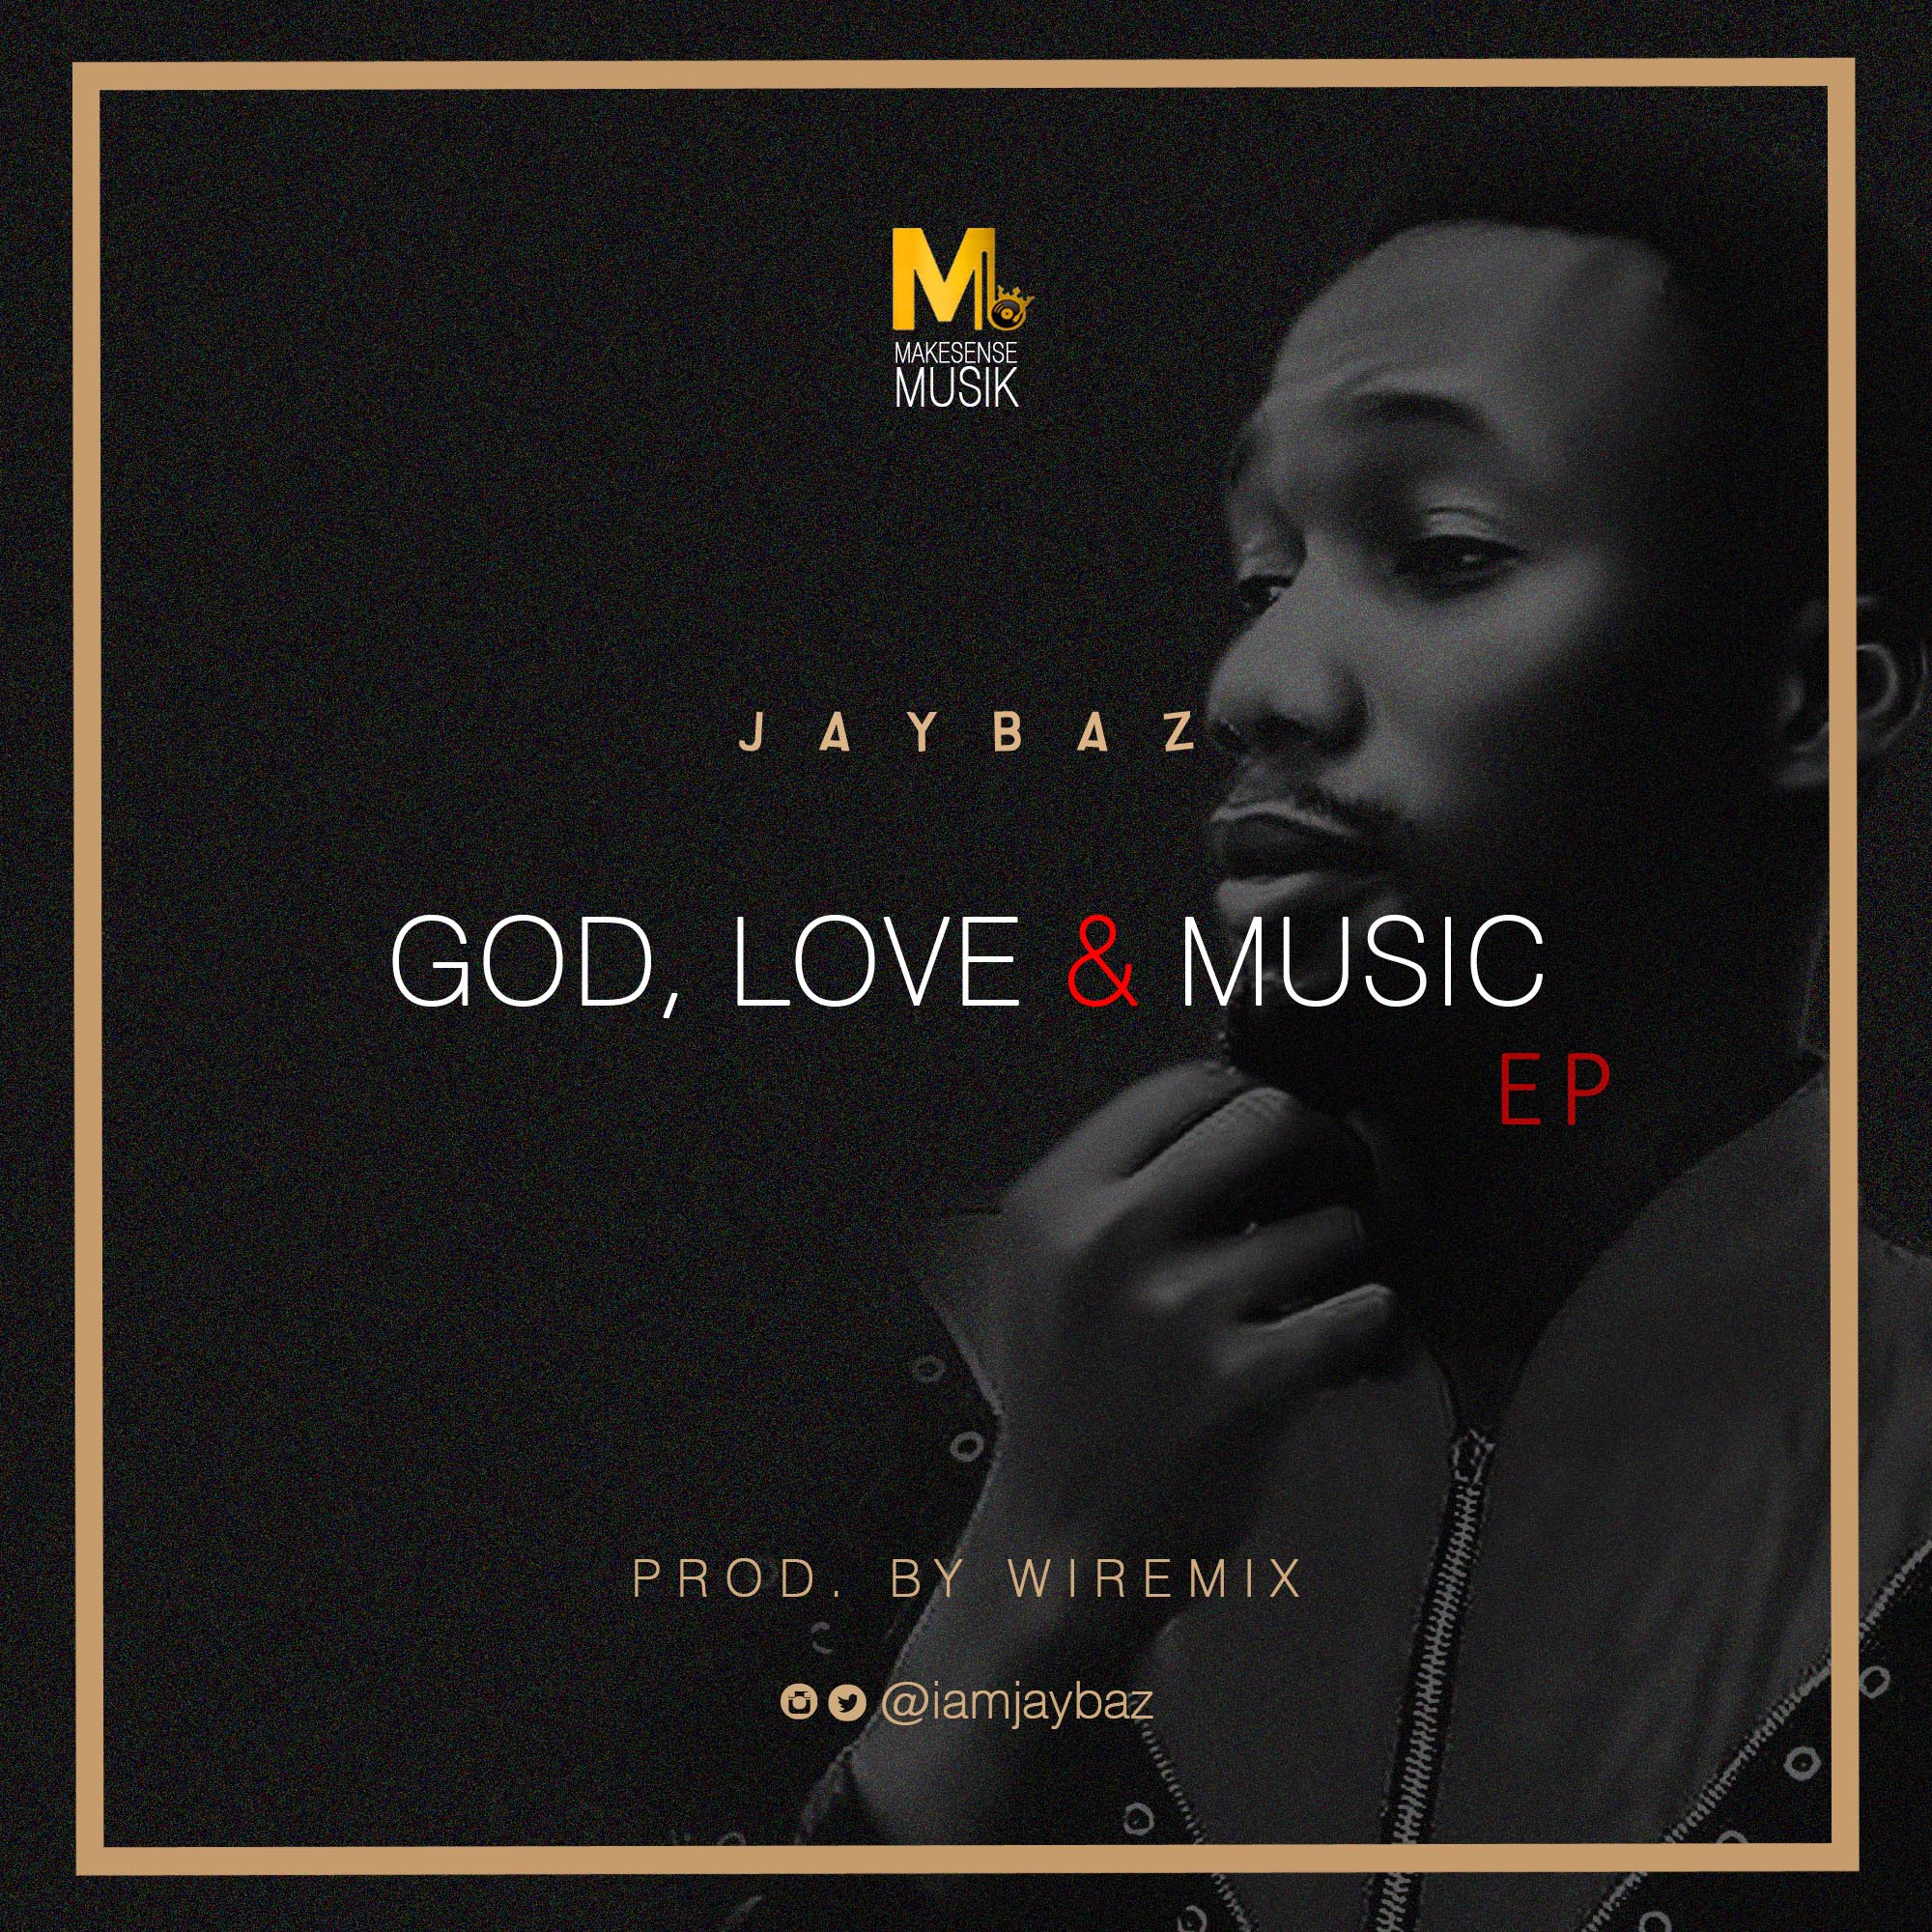 God, Love & Music EP Image